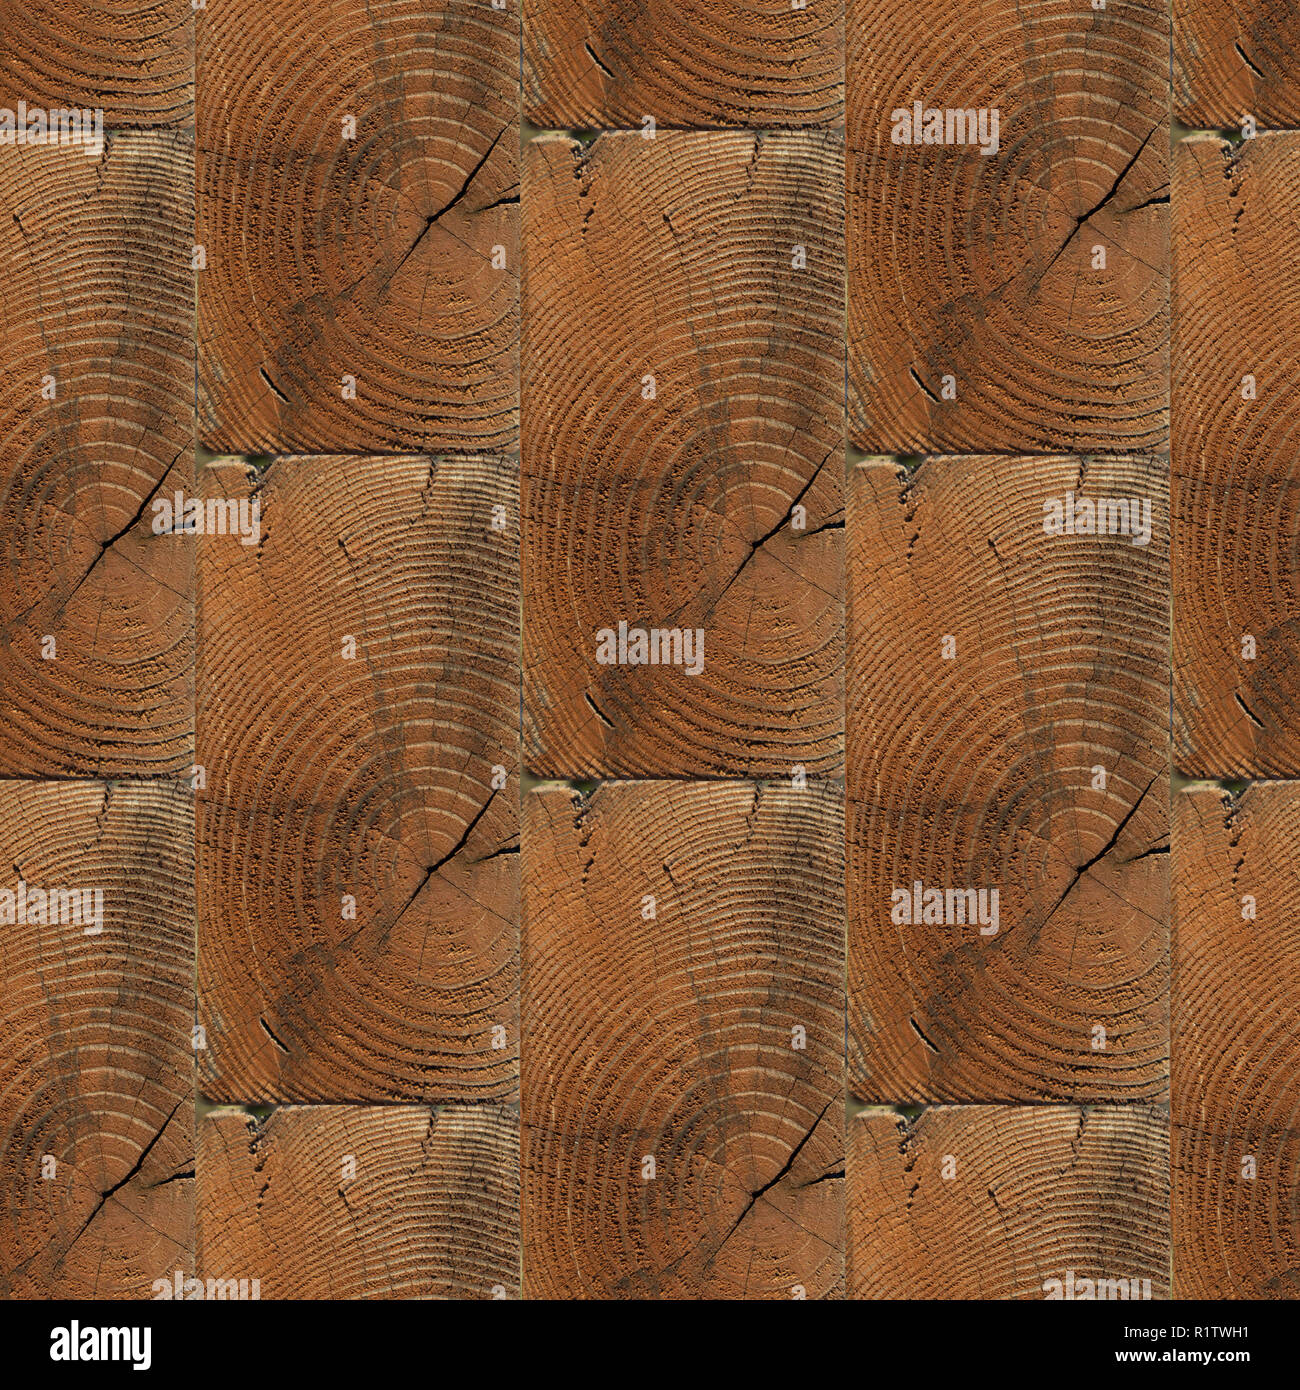 Abstract seamless pattern for designers of wooden bricks wall with